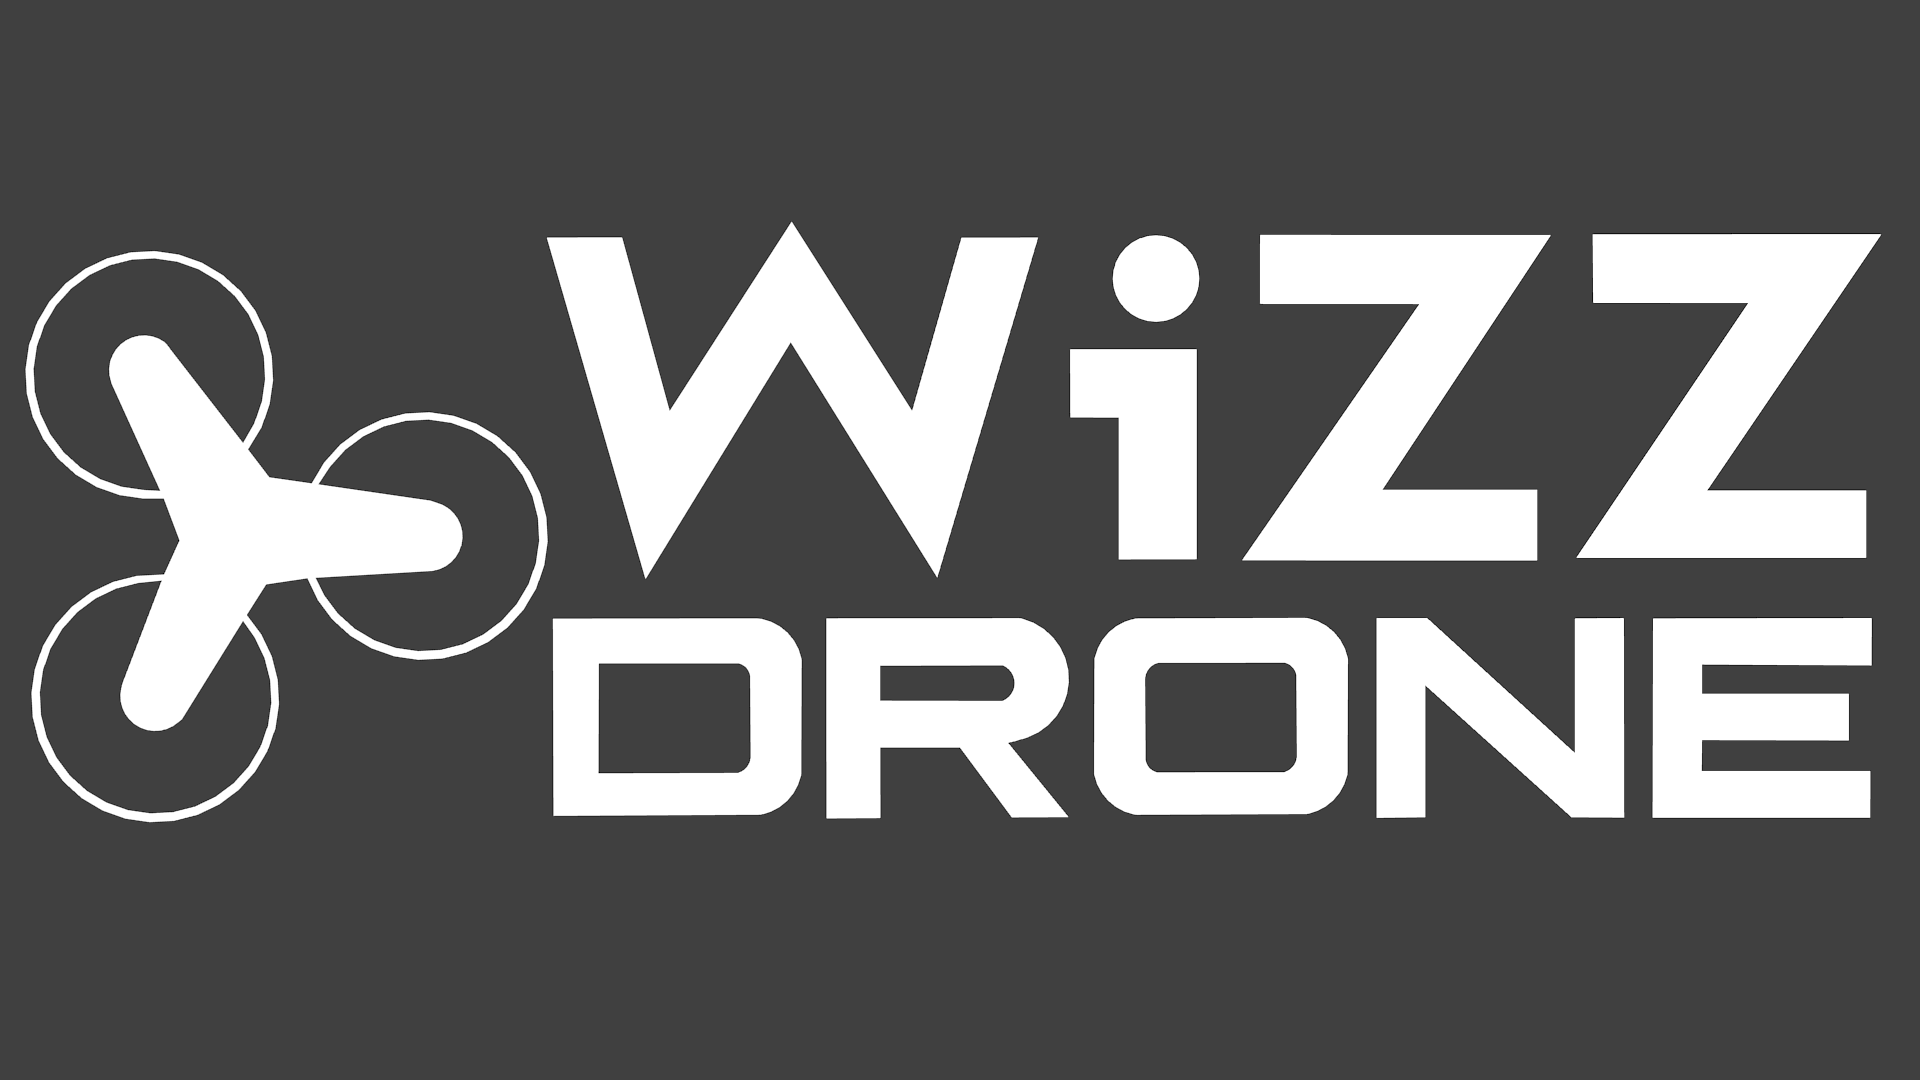 wizzdrone logo final 100002.png